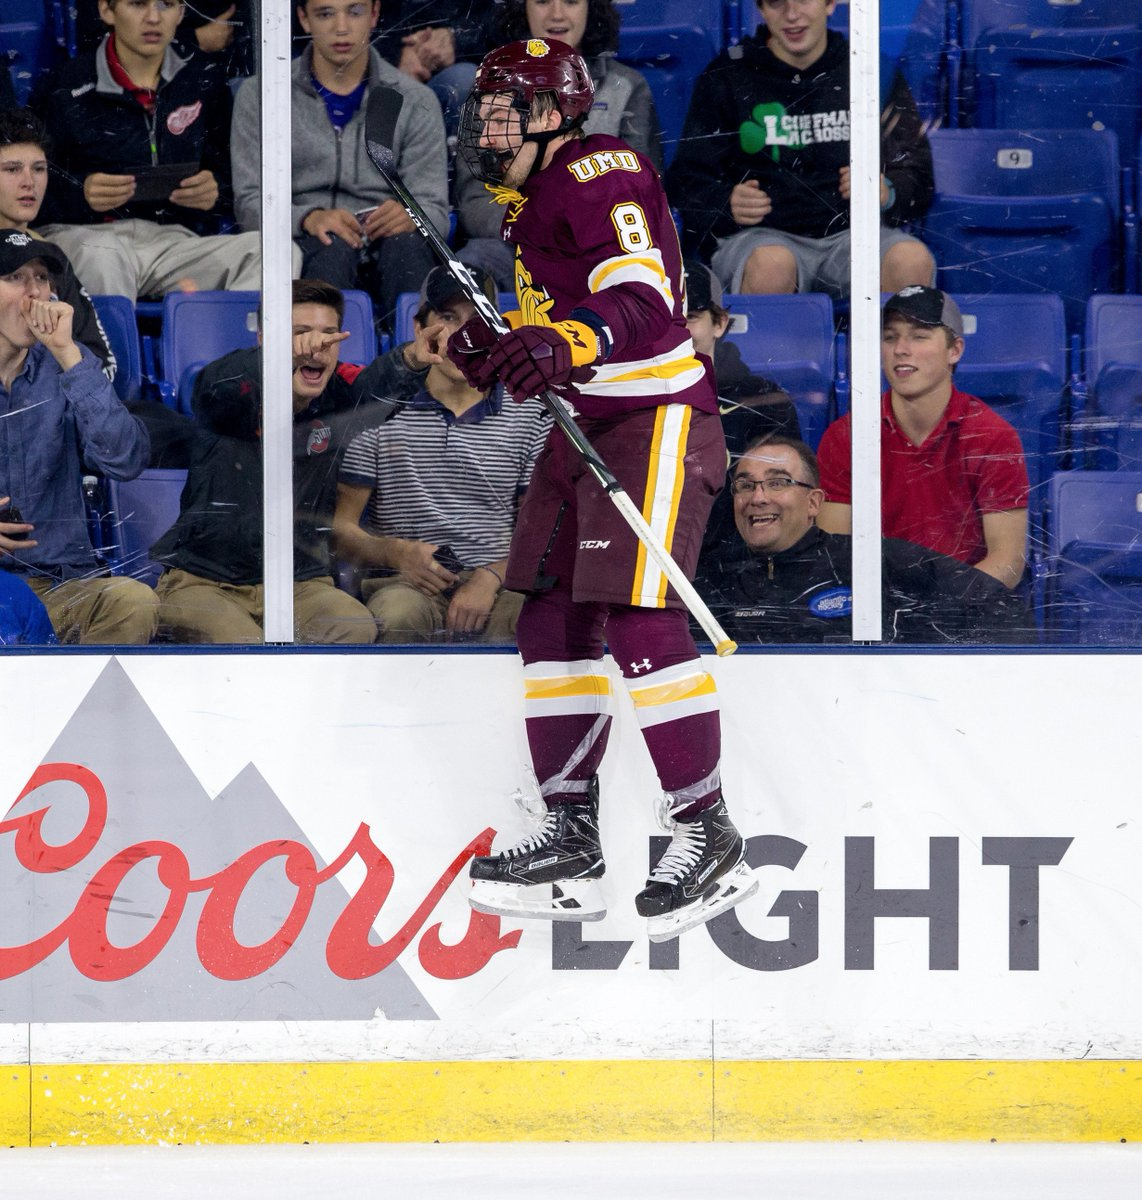 NCAA: Rare College Hockey 1 Vs. 2 Showdown - North Dakota Visits Minnesota Duluth